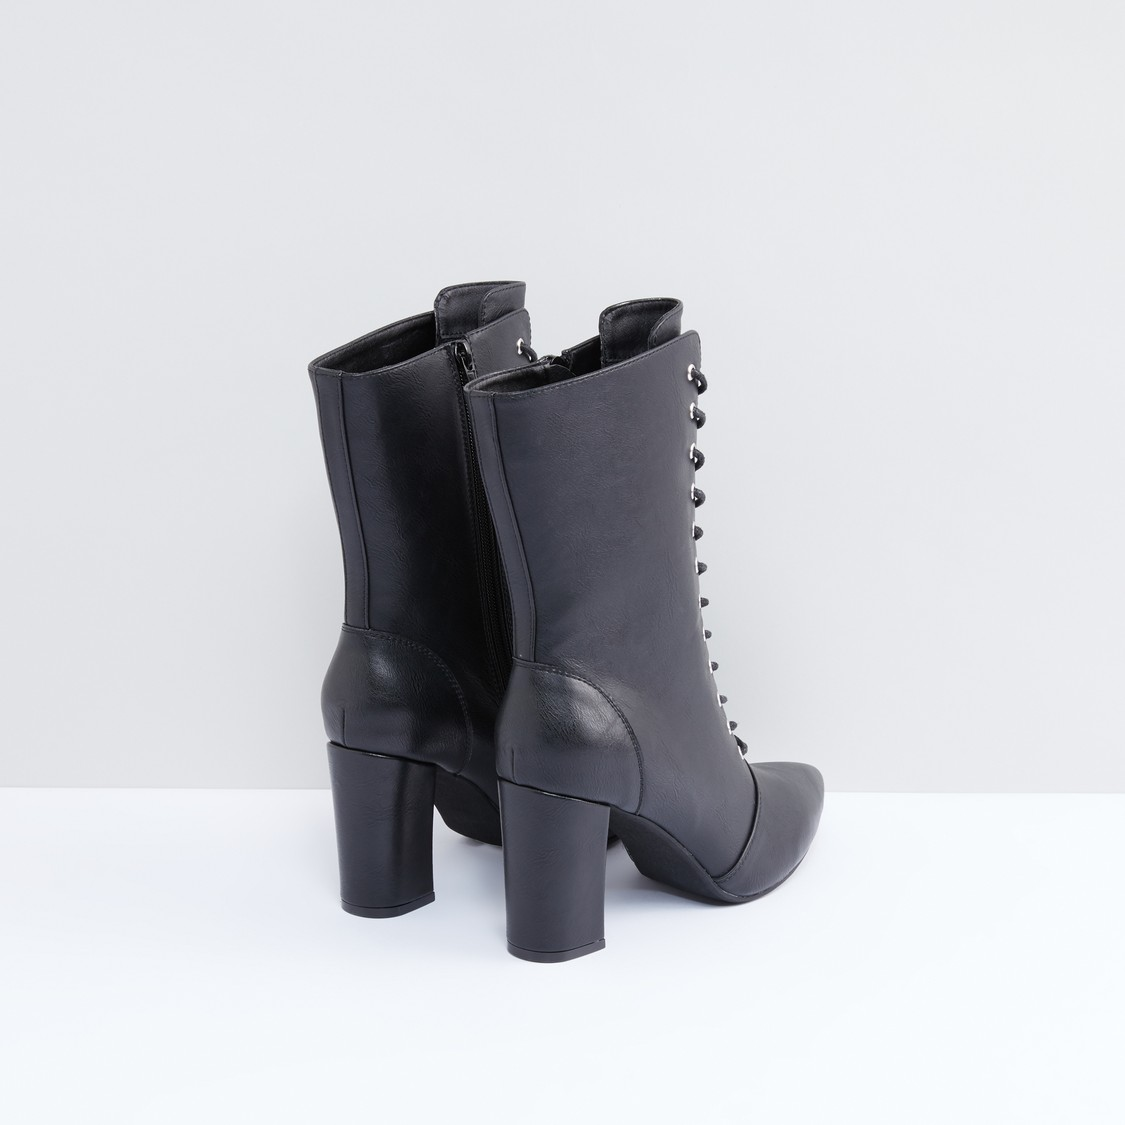 Lace-Up Detail Boots with Zip Closure